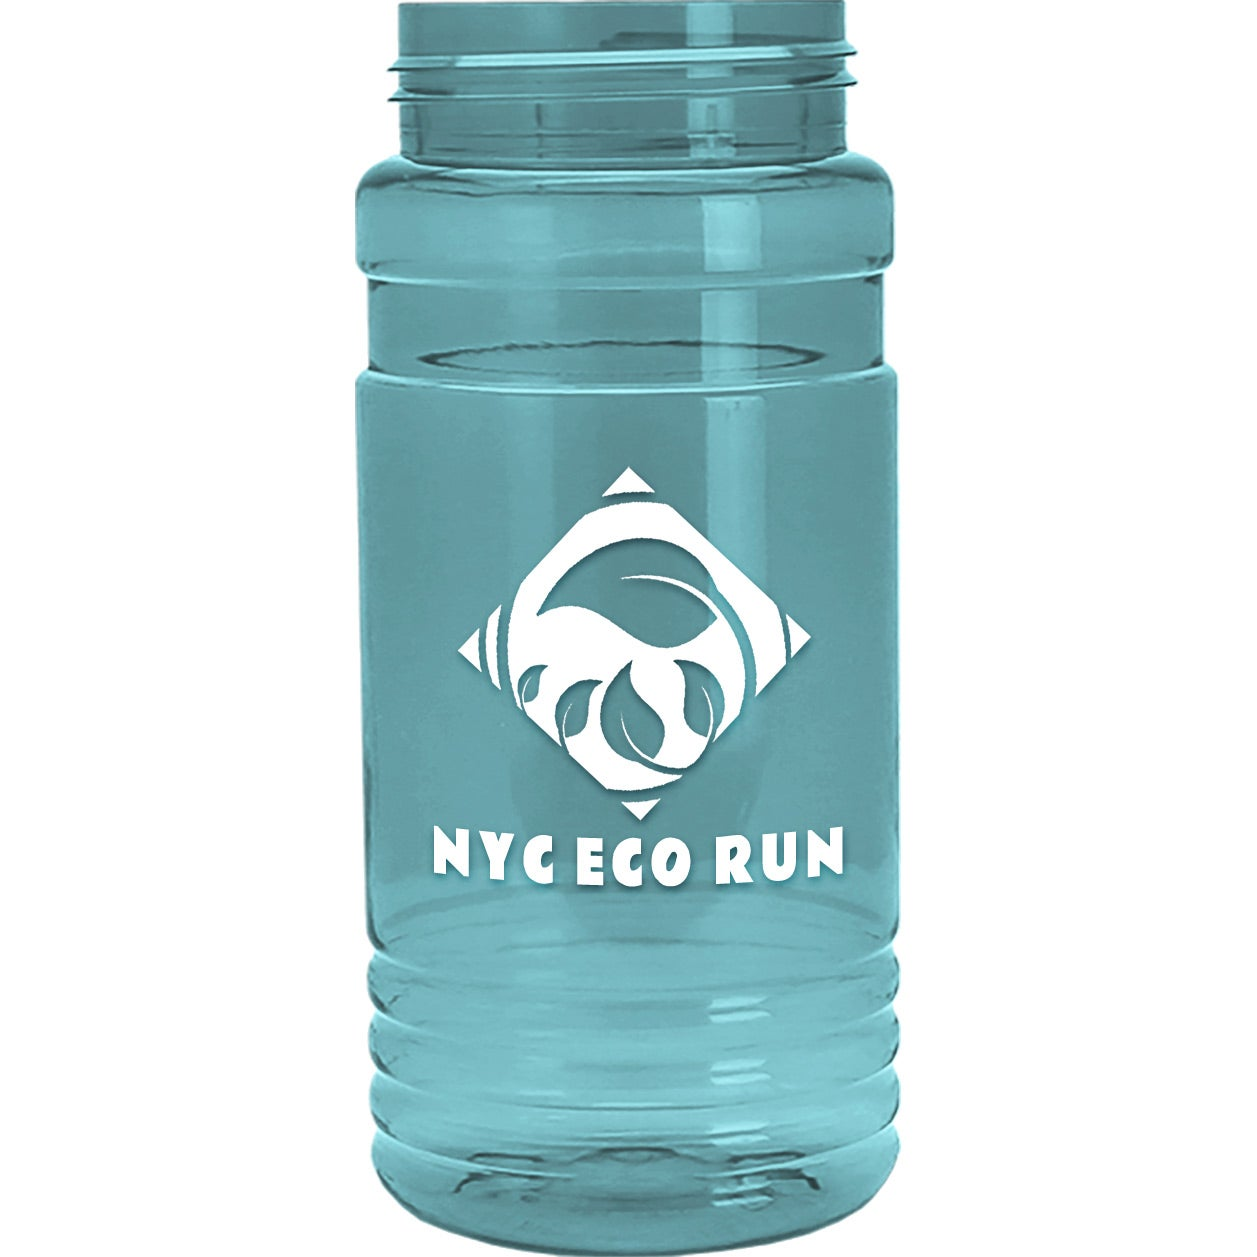 Recycled PETE Bottle with Flip Top Lid (20 Oz )